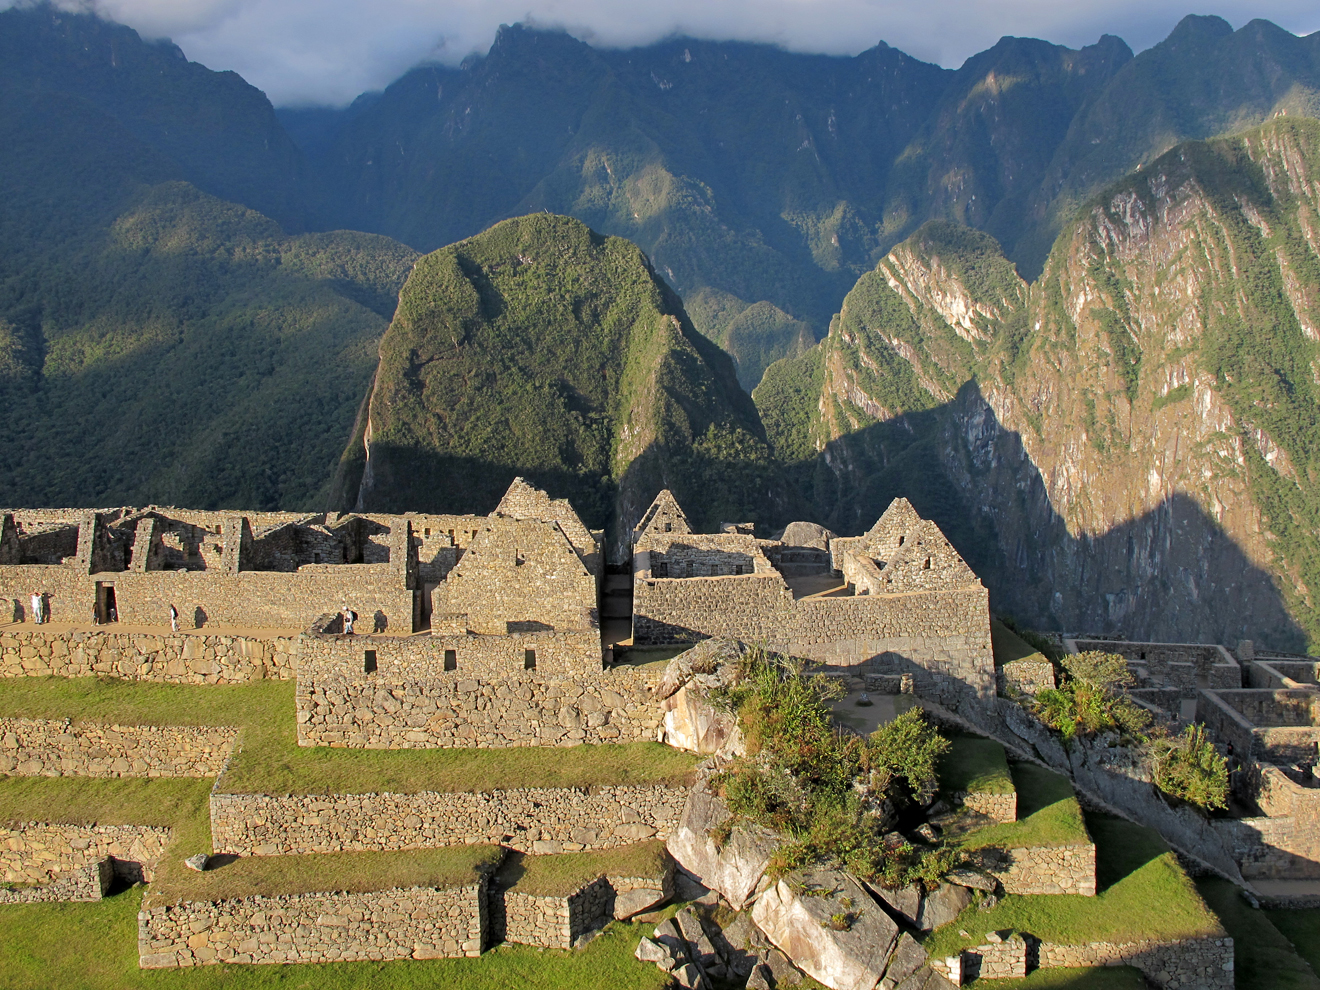 late-day sun at Machu Picchu, Peru